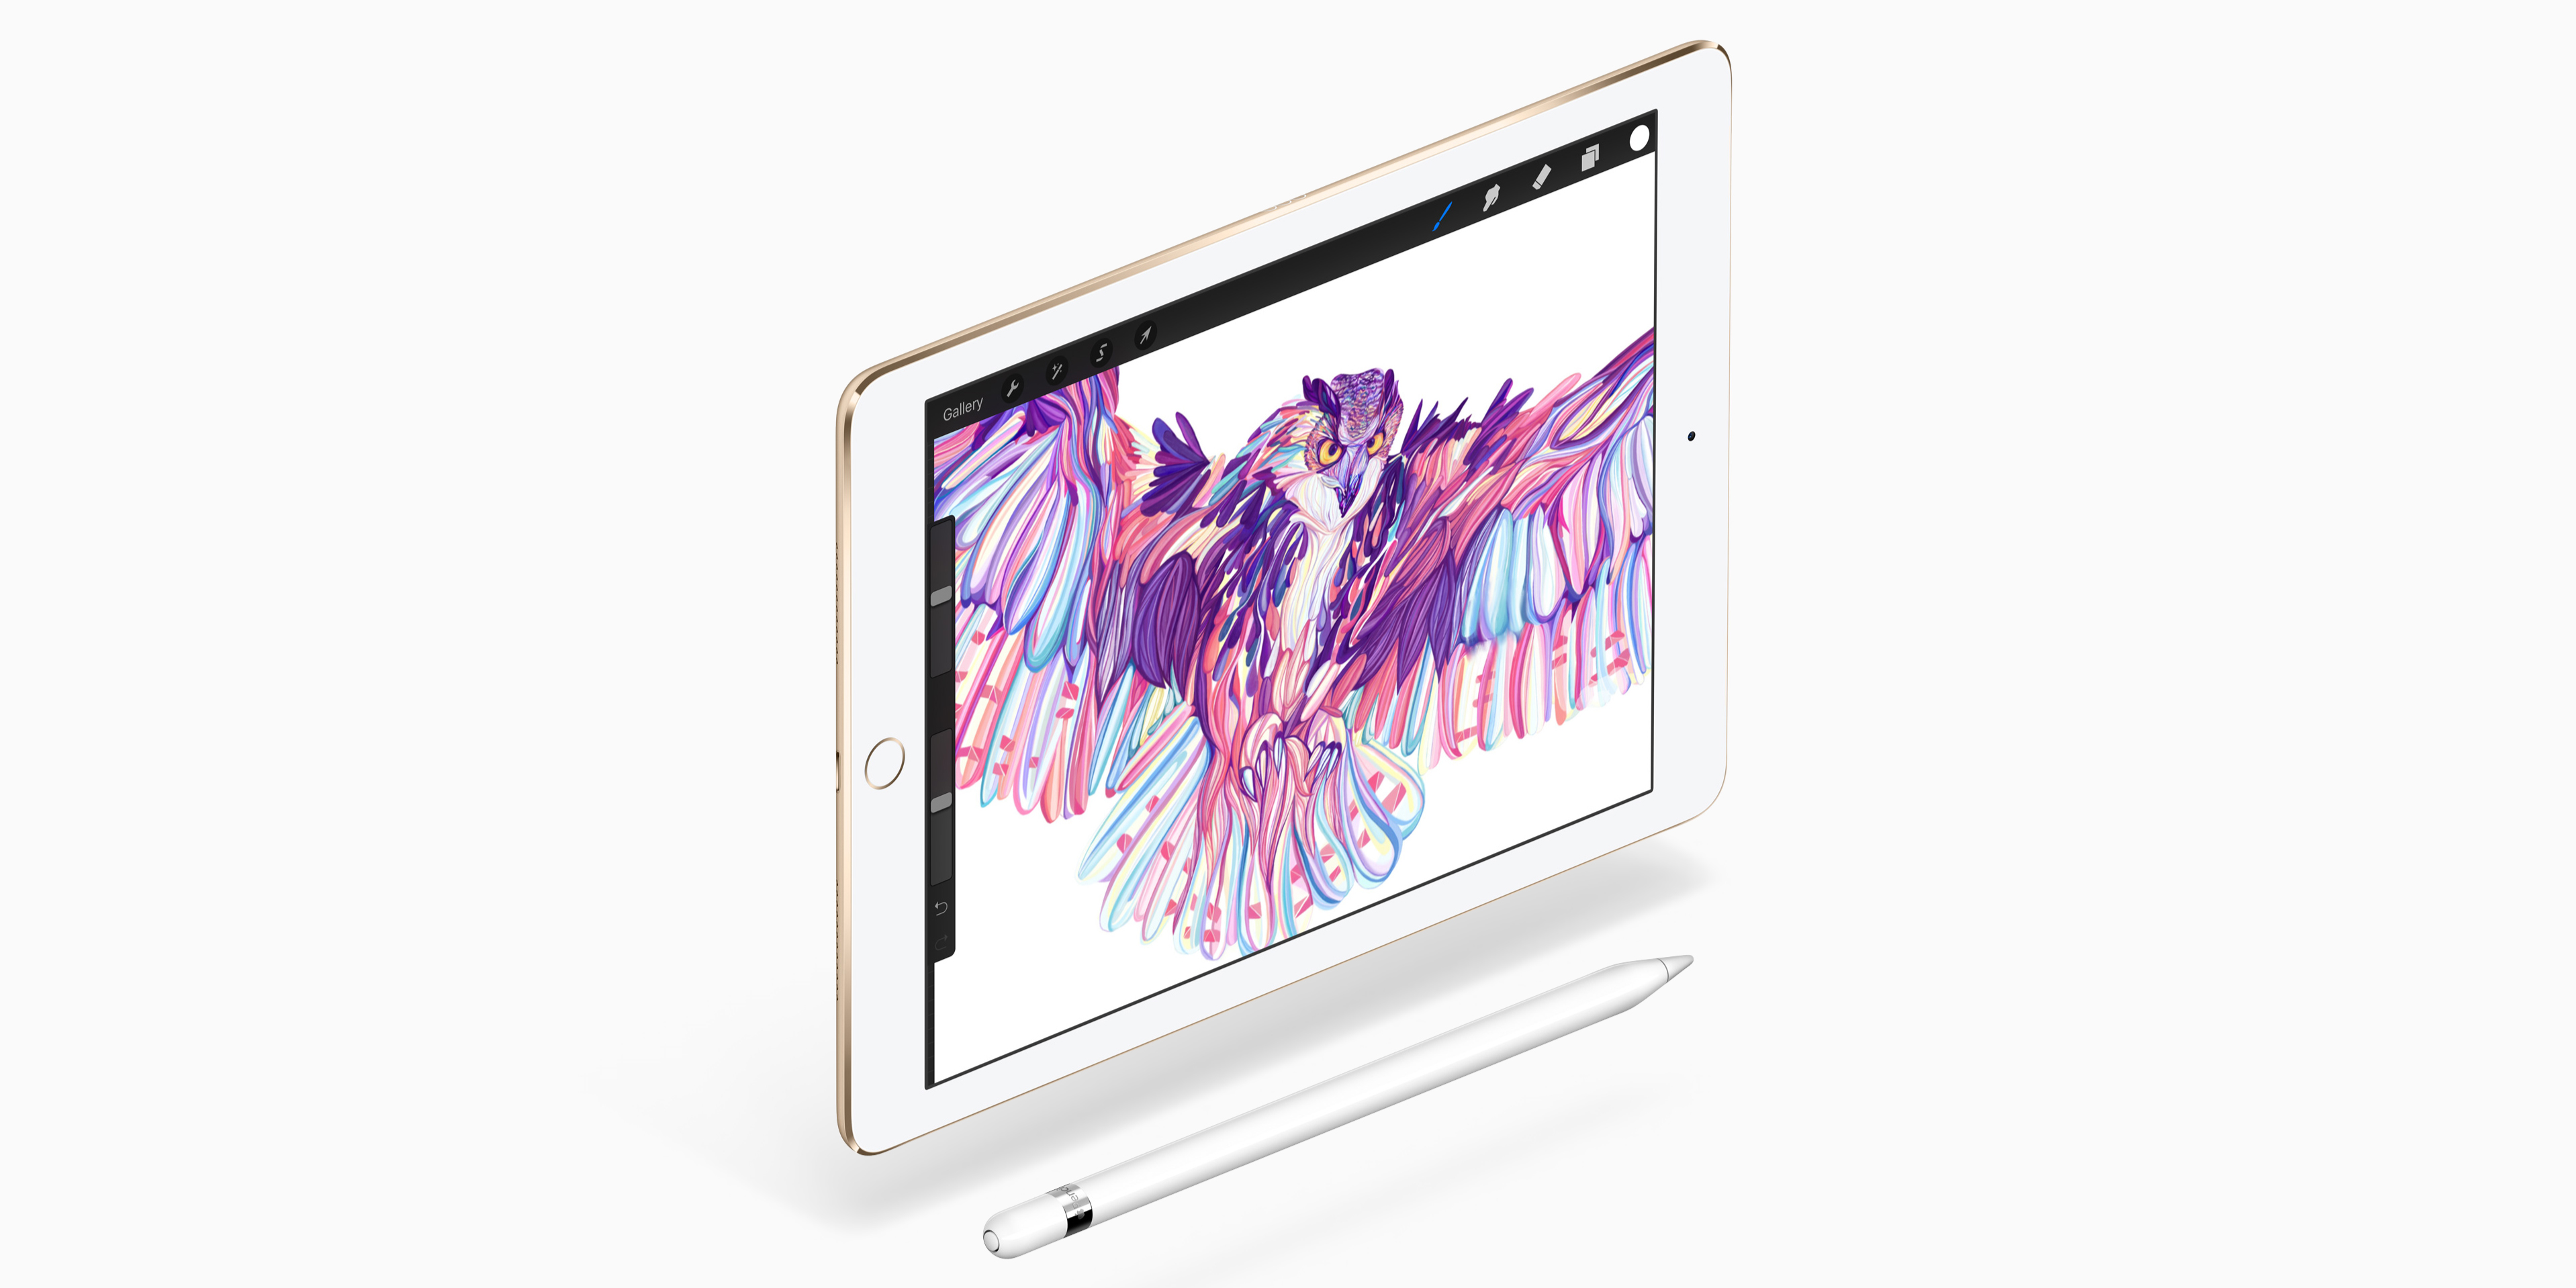 Costco Members Can Pick Up Apple S 9 7 Inch Ipad Pro Wi Fi Cell 128gb For 400 Orig 879 More 9to5toys